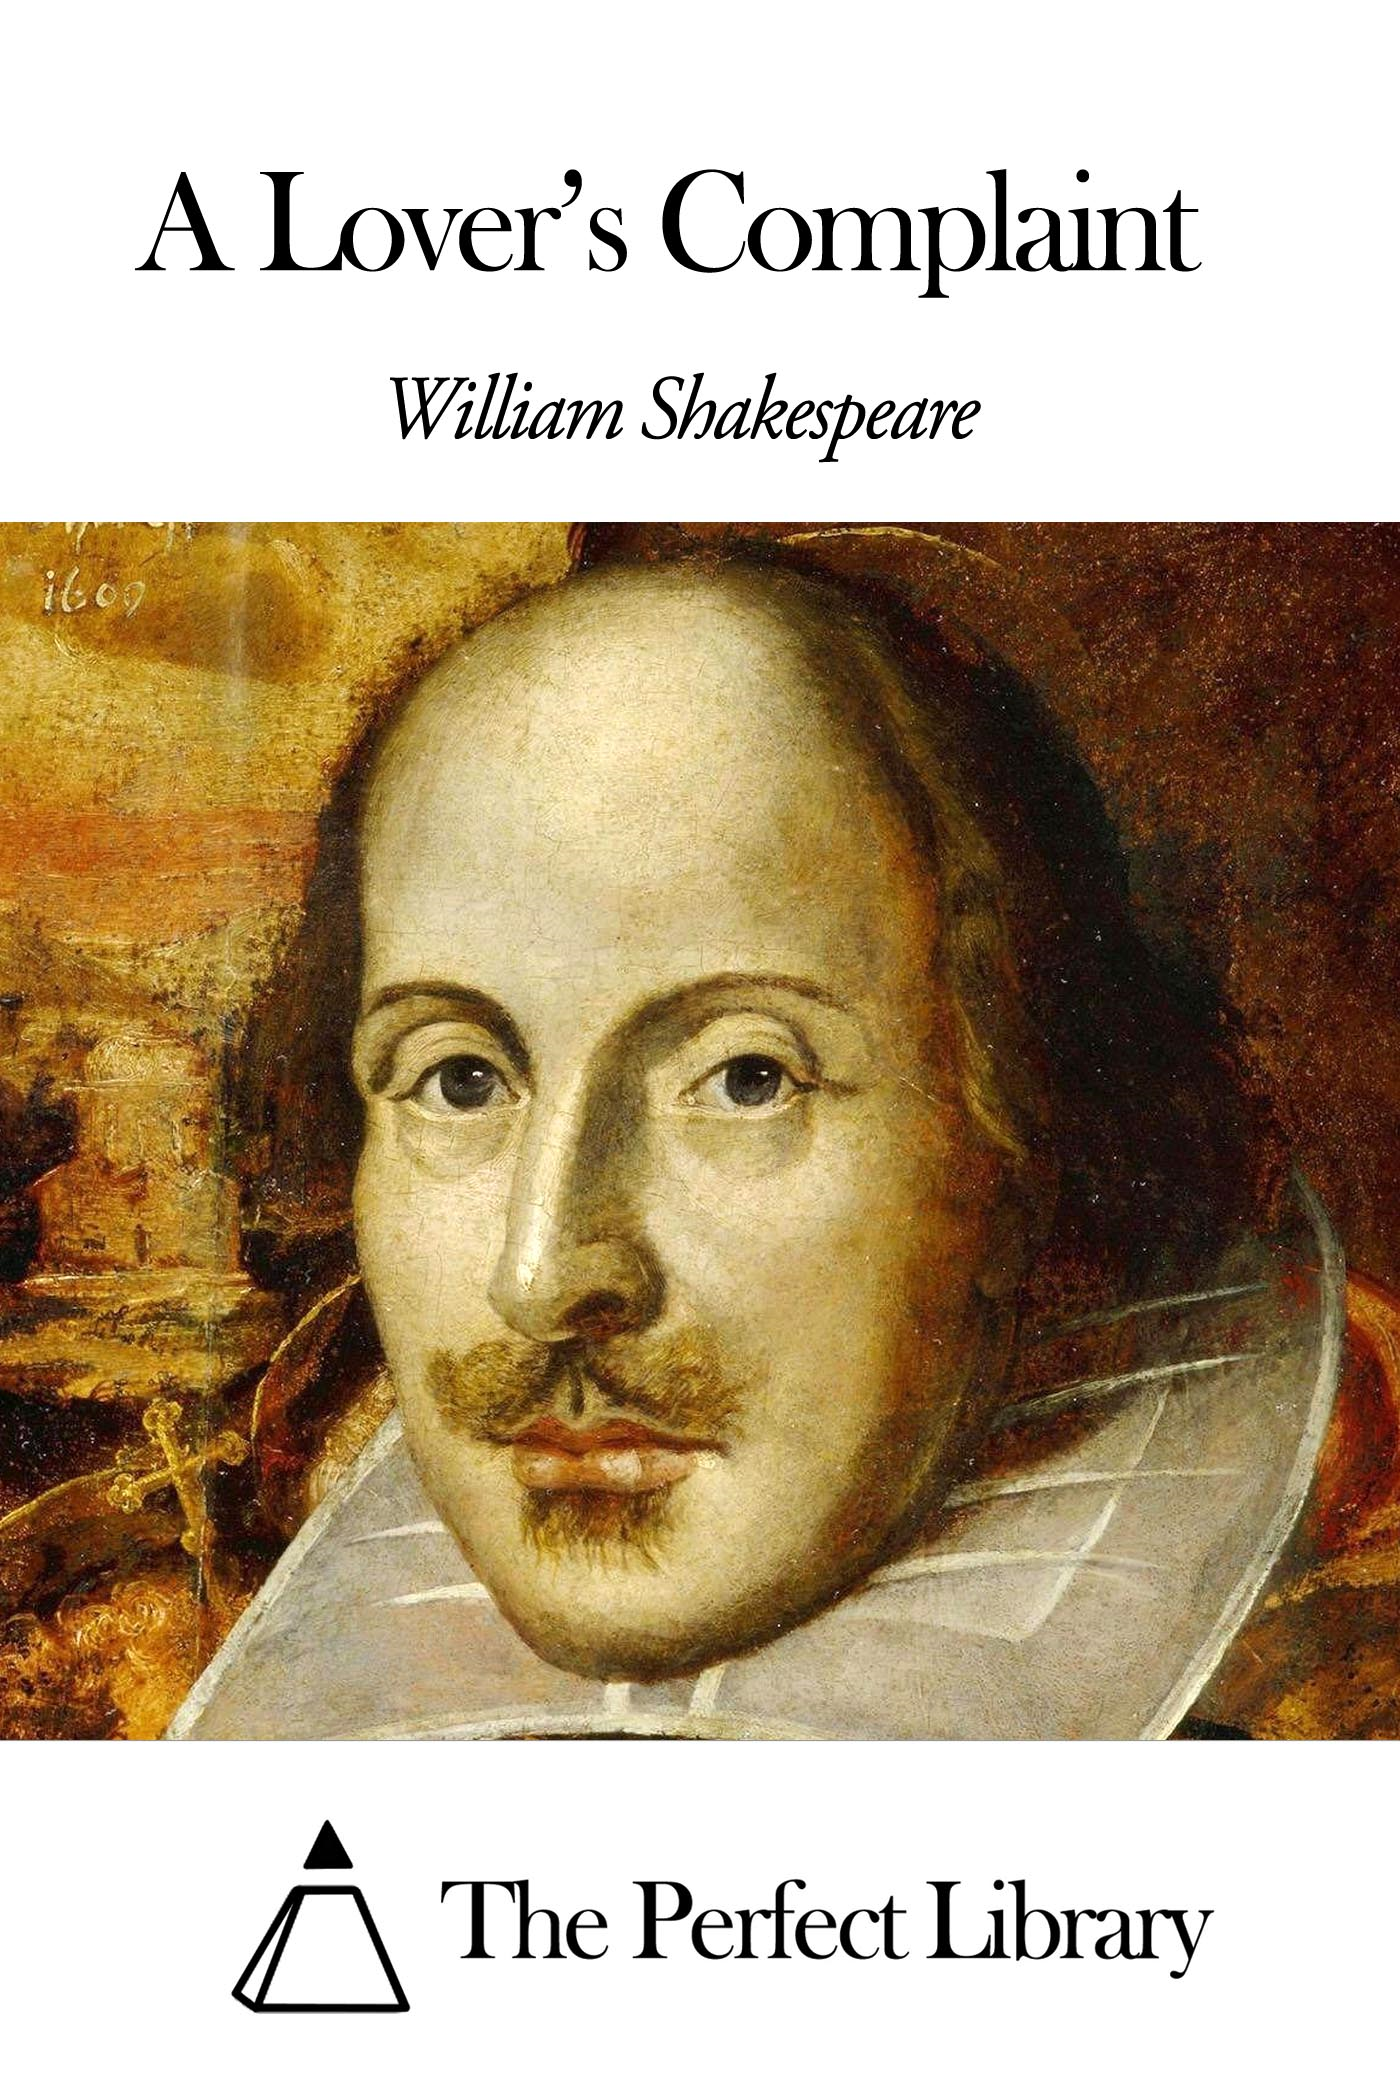 William Shakespeare - A Lover's Complaint